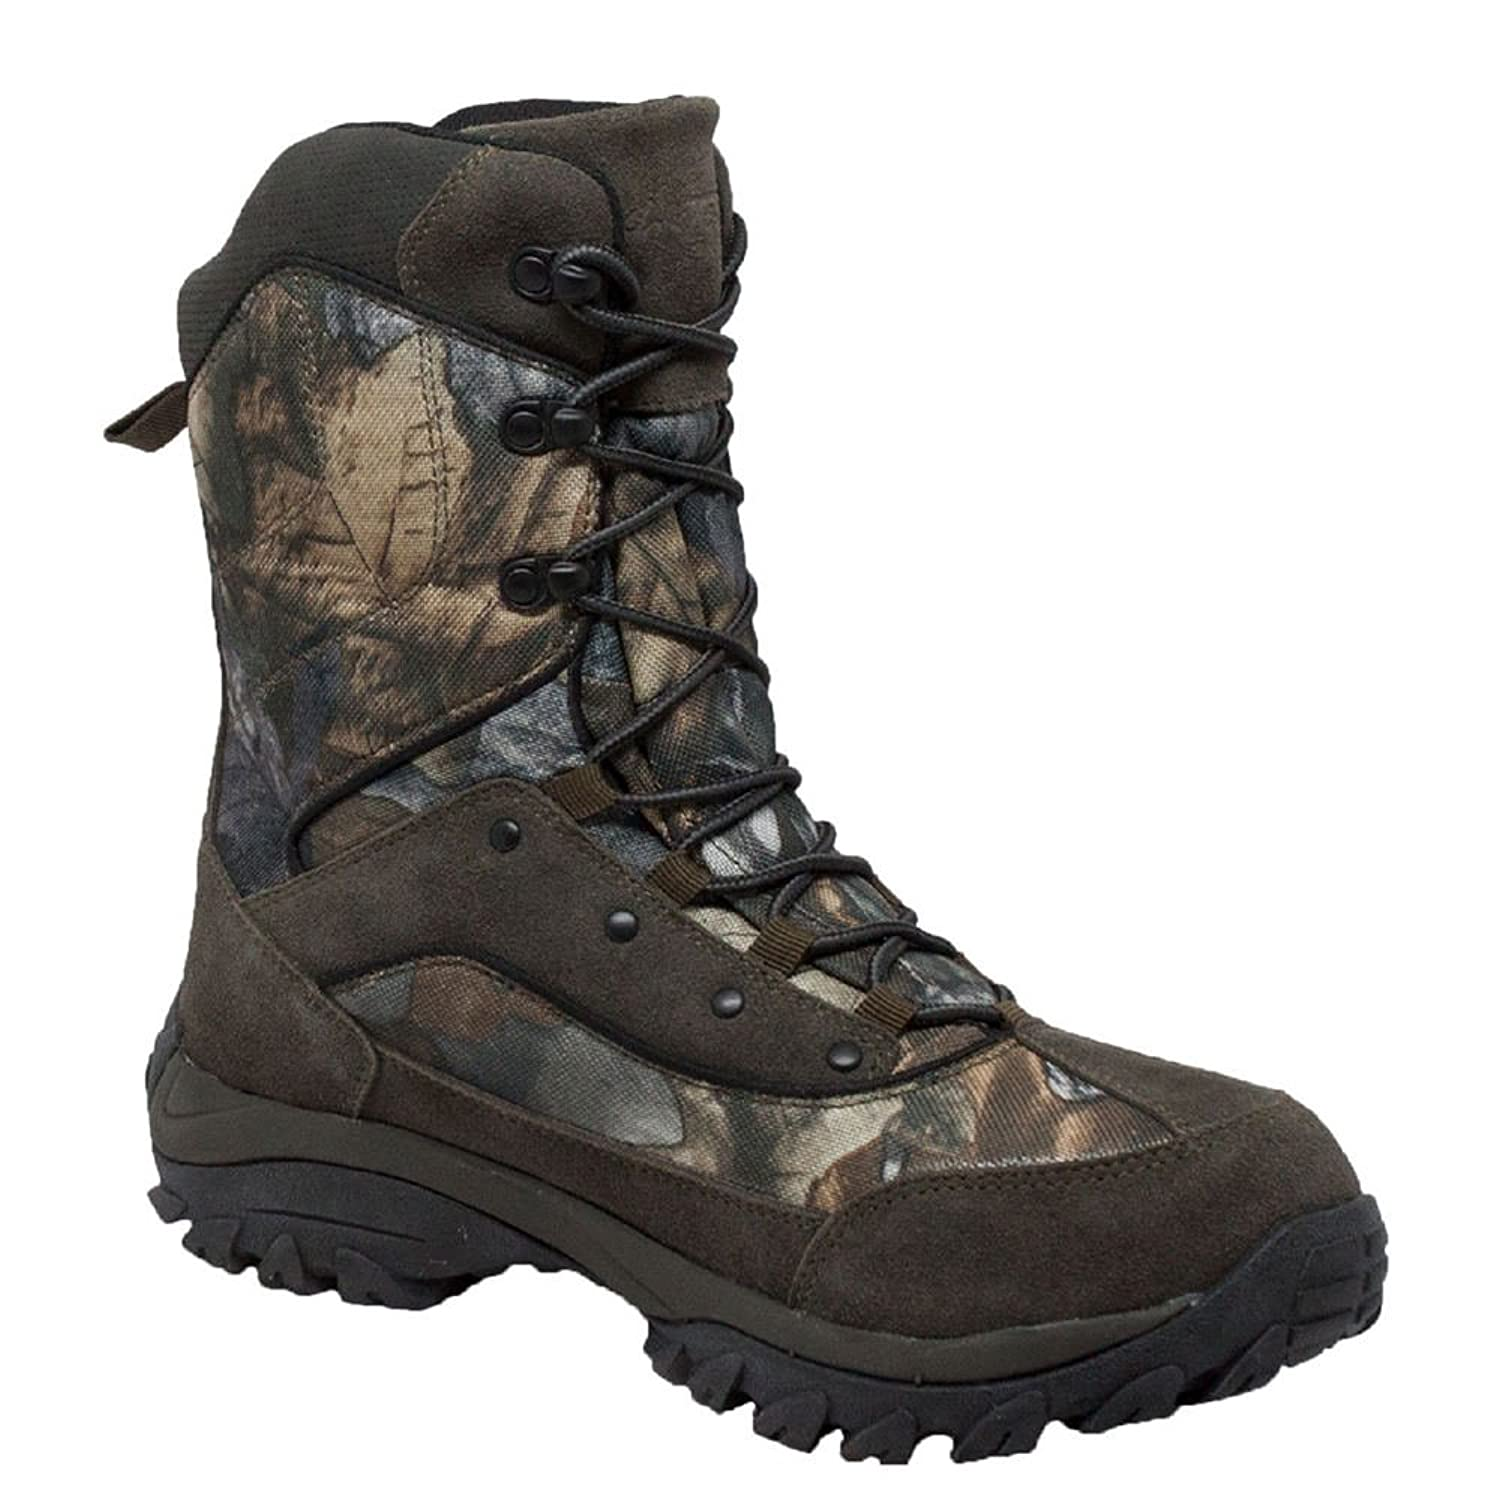 AdTec Mens Dark Green 11in Camo Insulated Suede Hunting Boots